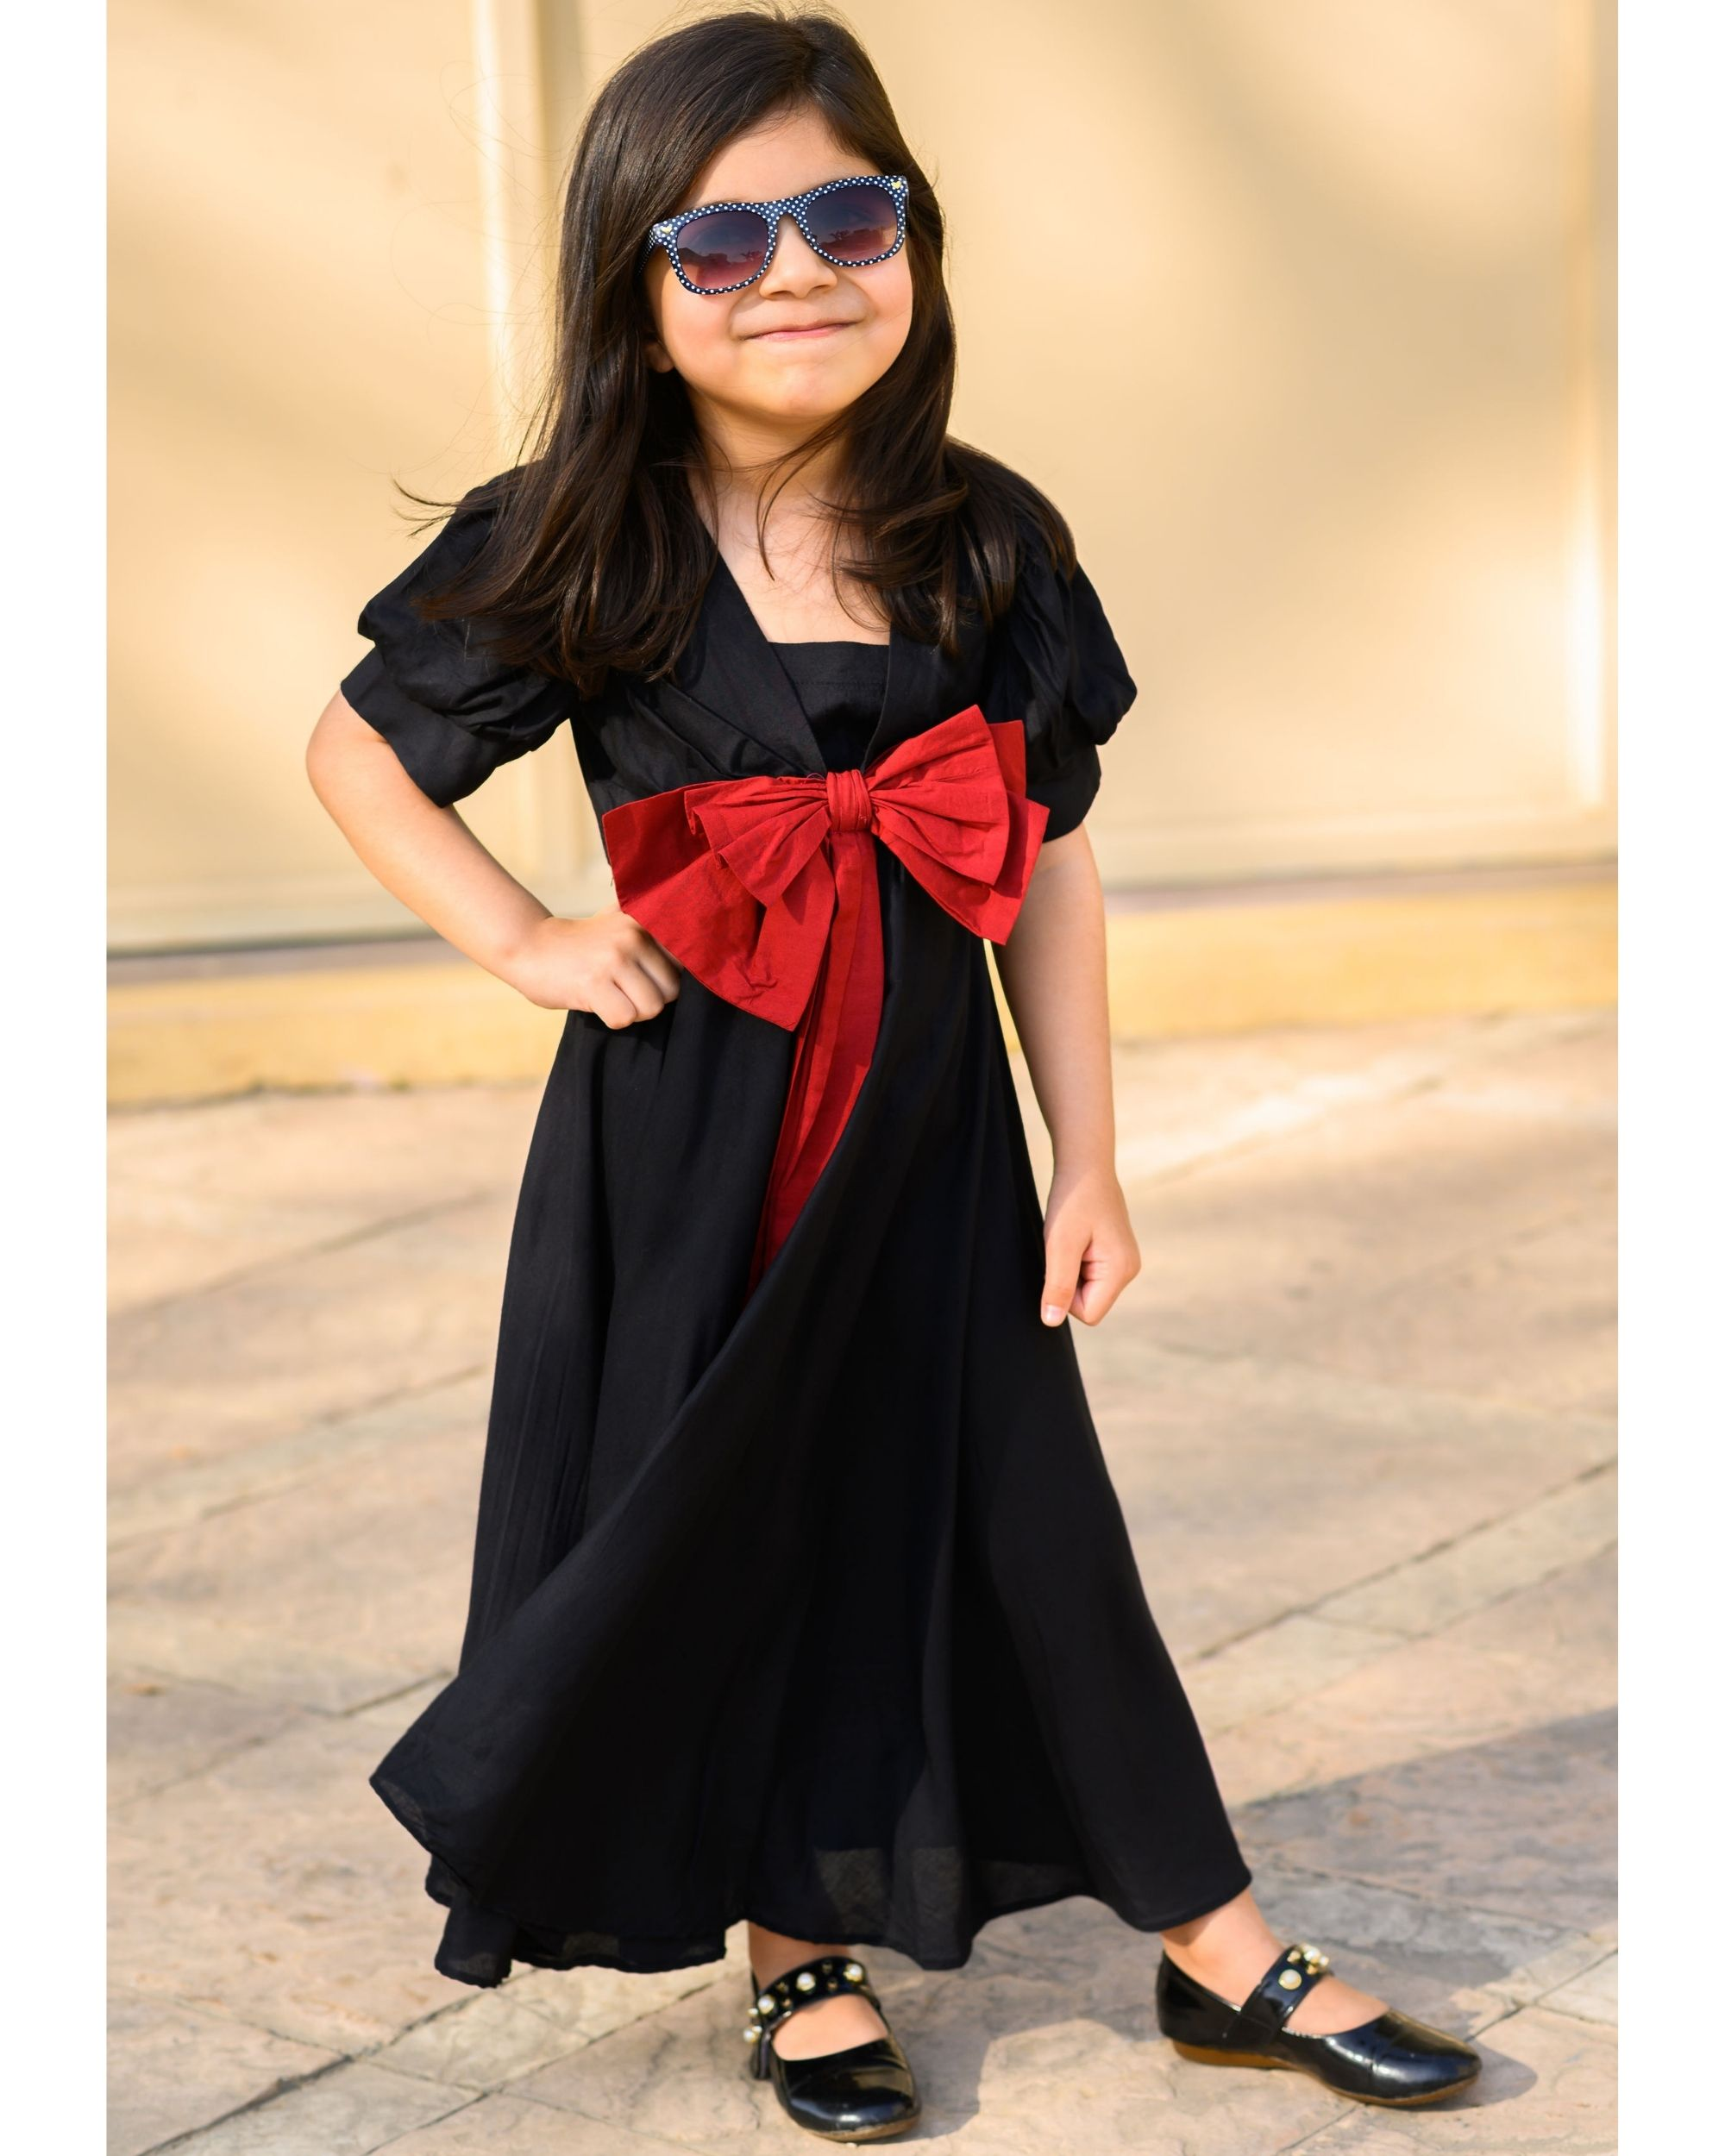 Black flared dress with red bow